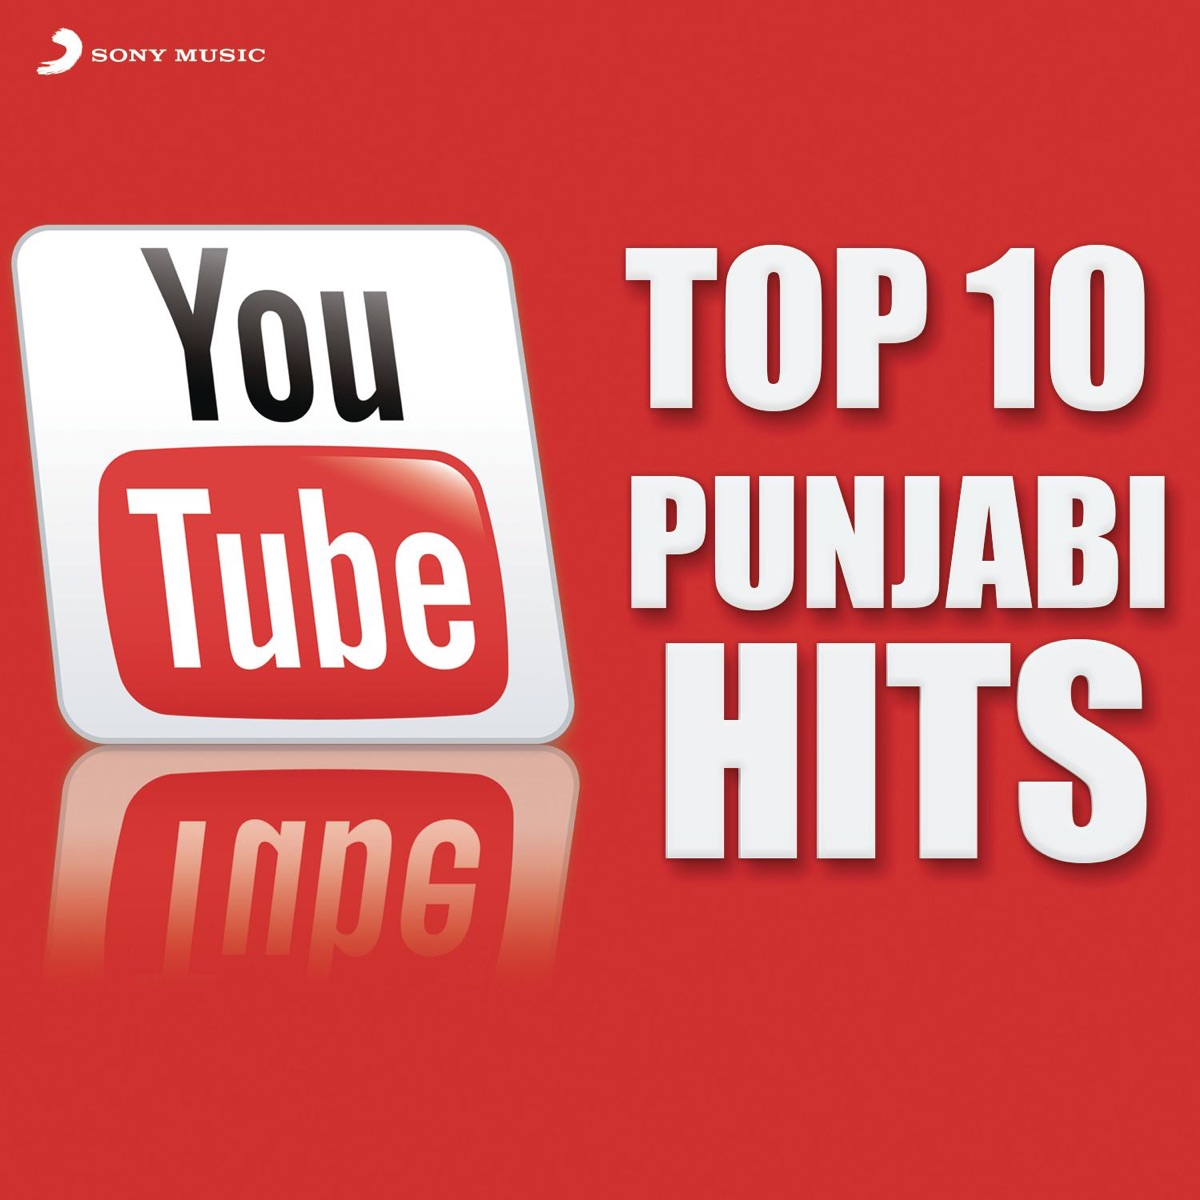 Youtube Top 10 Punjabi Hits Album Cover by Various Artists